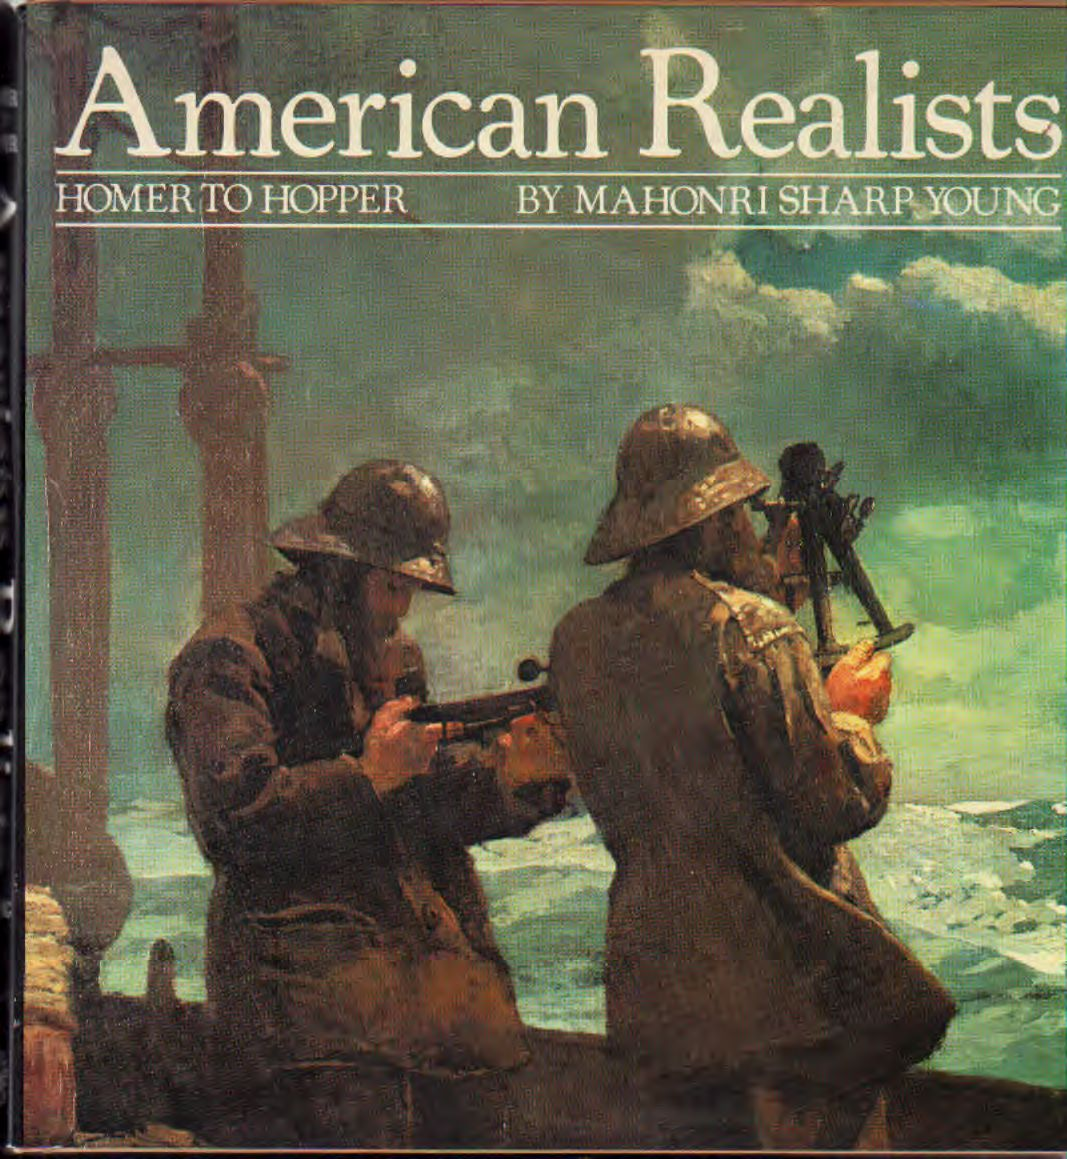 American Realists – Homer to Hopper